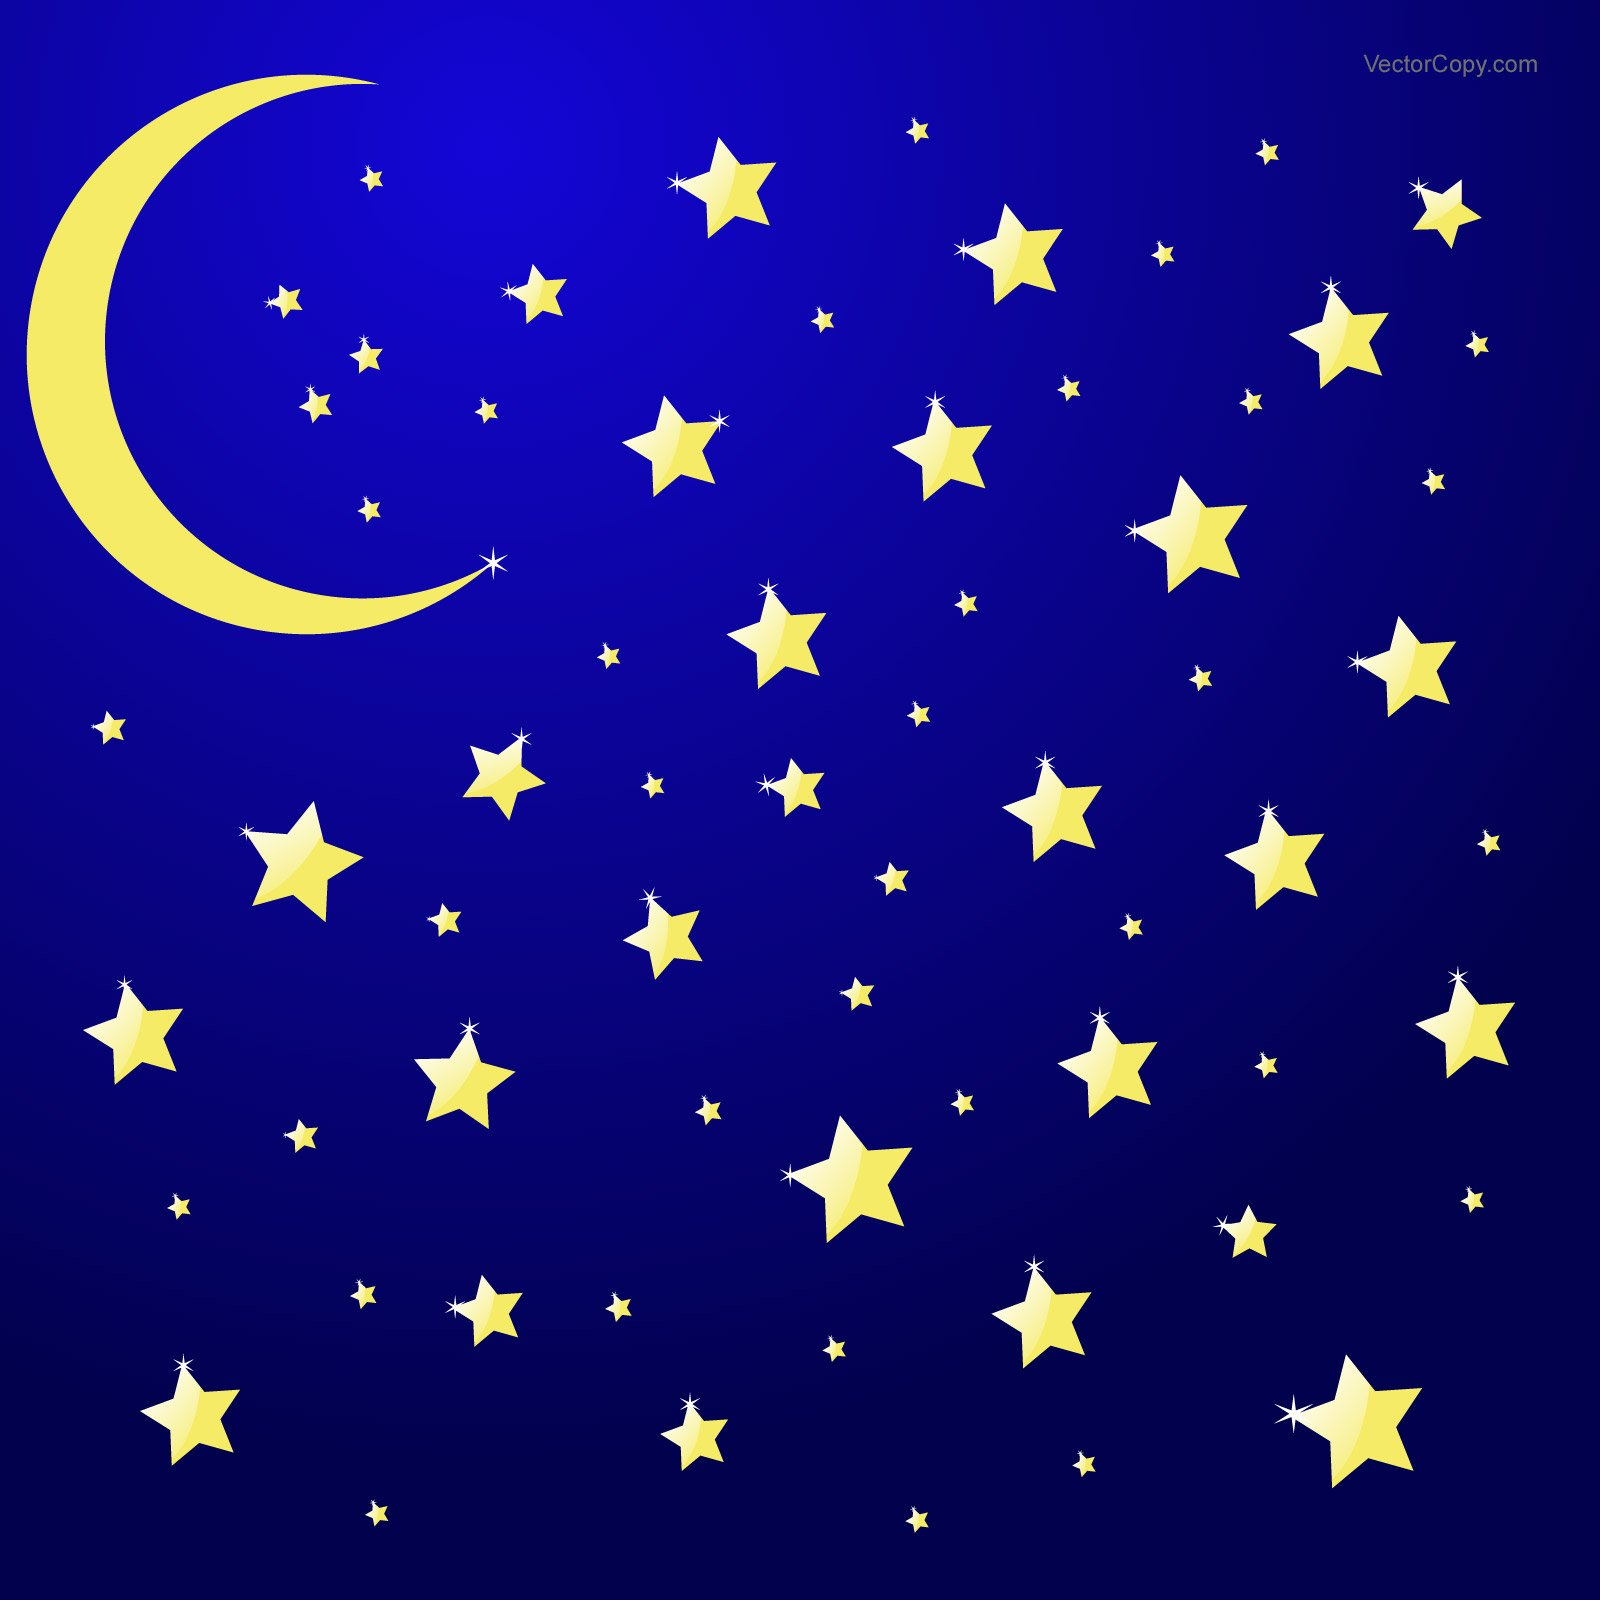 Night sky with moon and stars vector eps by VectorCopy 1600x1600